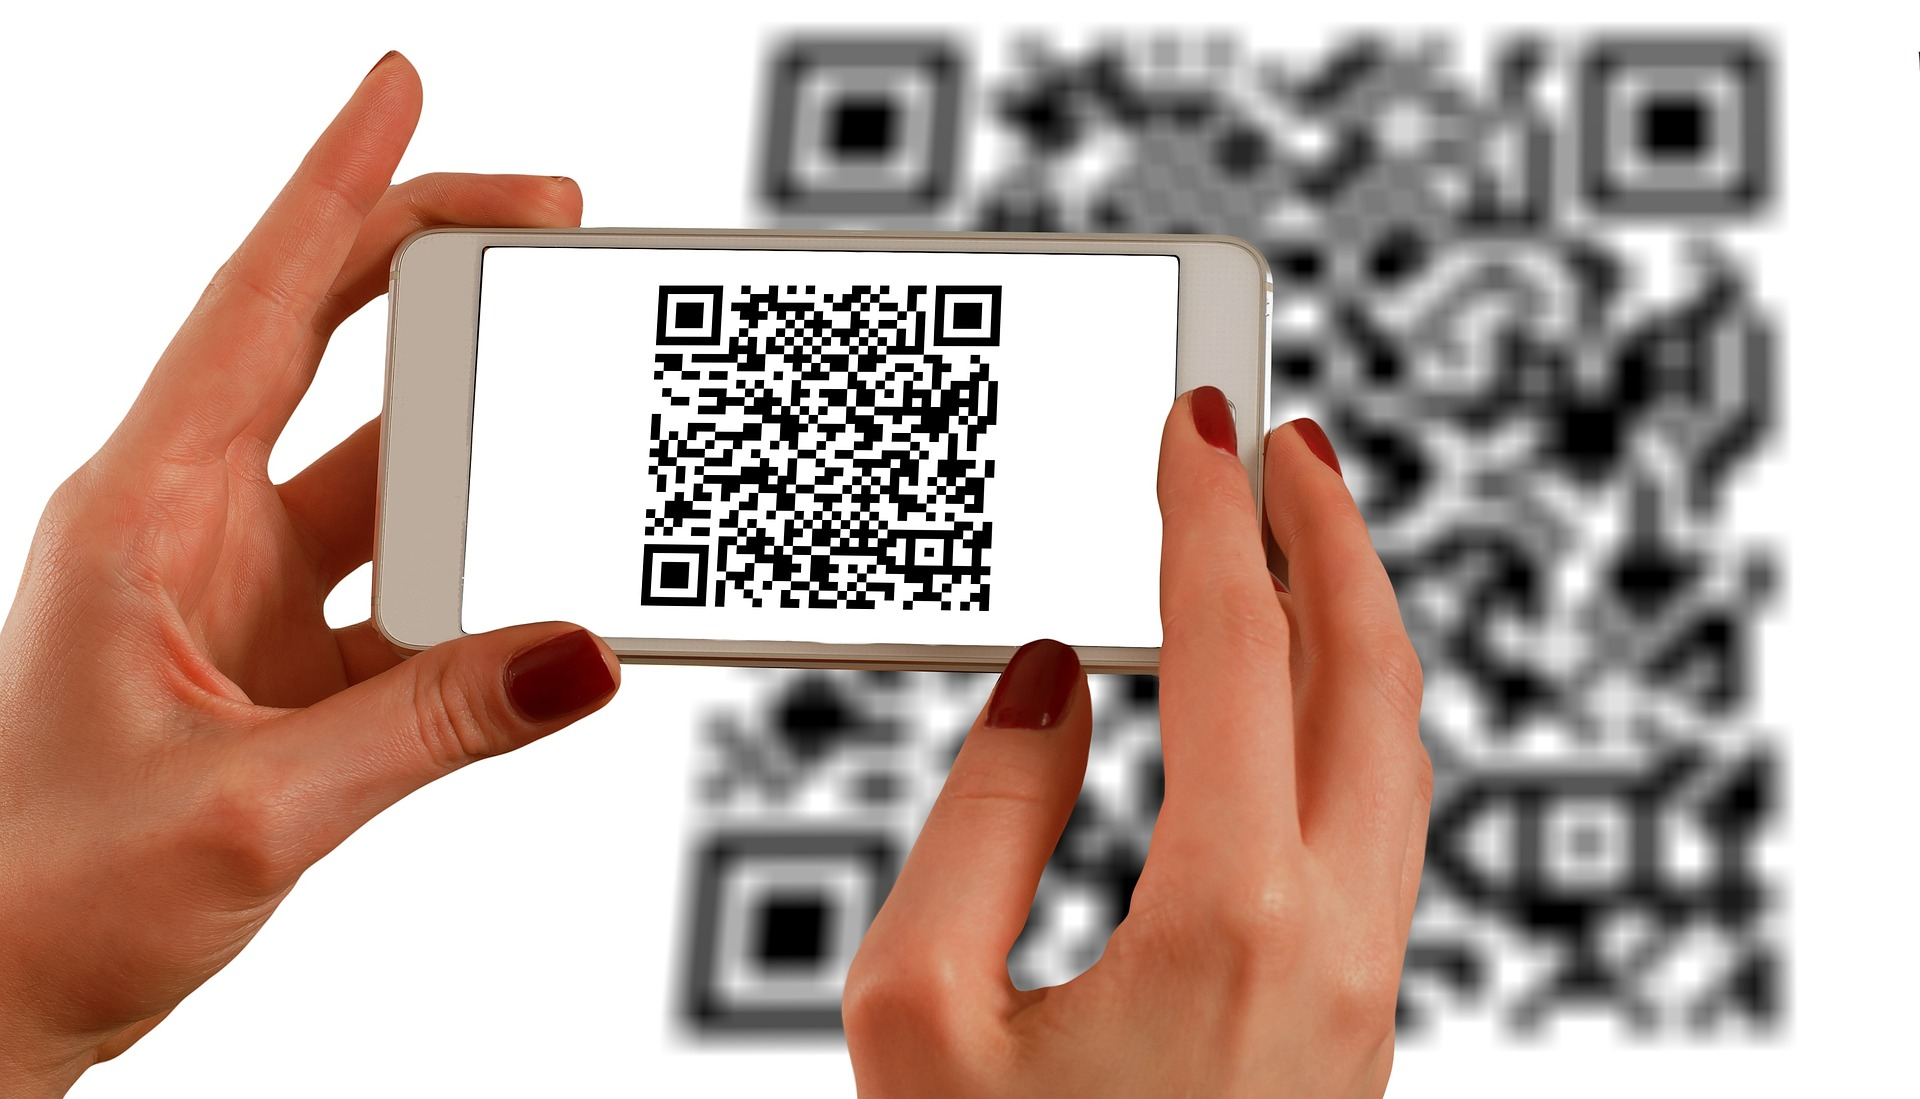 QR Code Payments Are Great for Developing Countries - How about Manhattan?